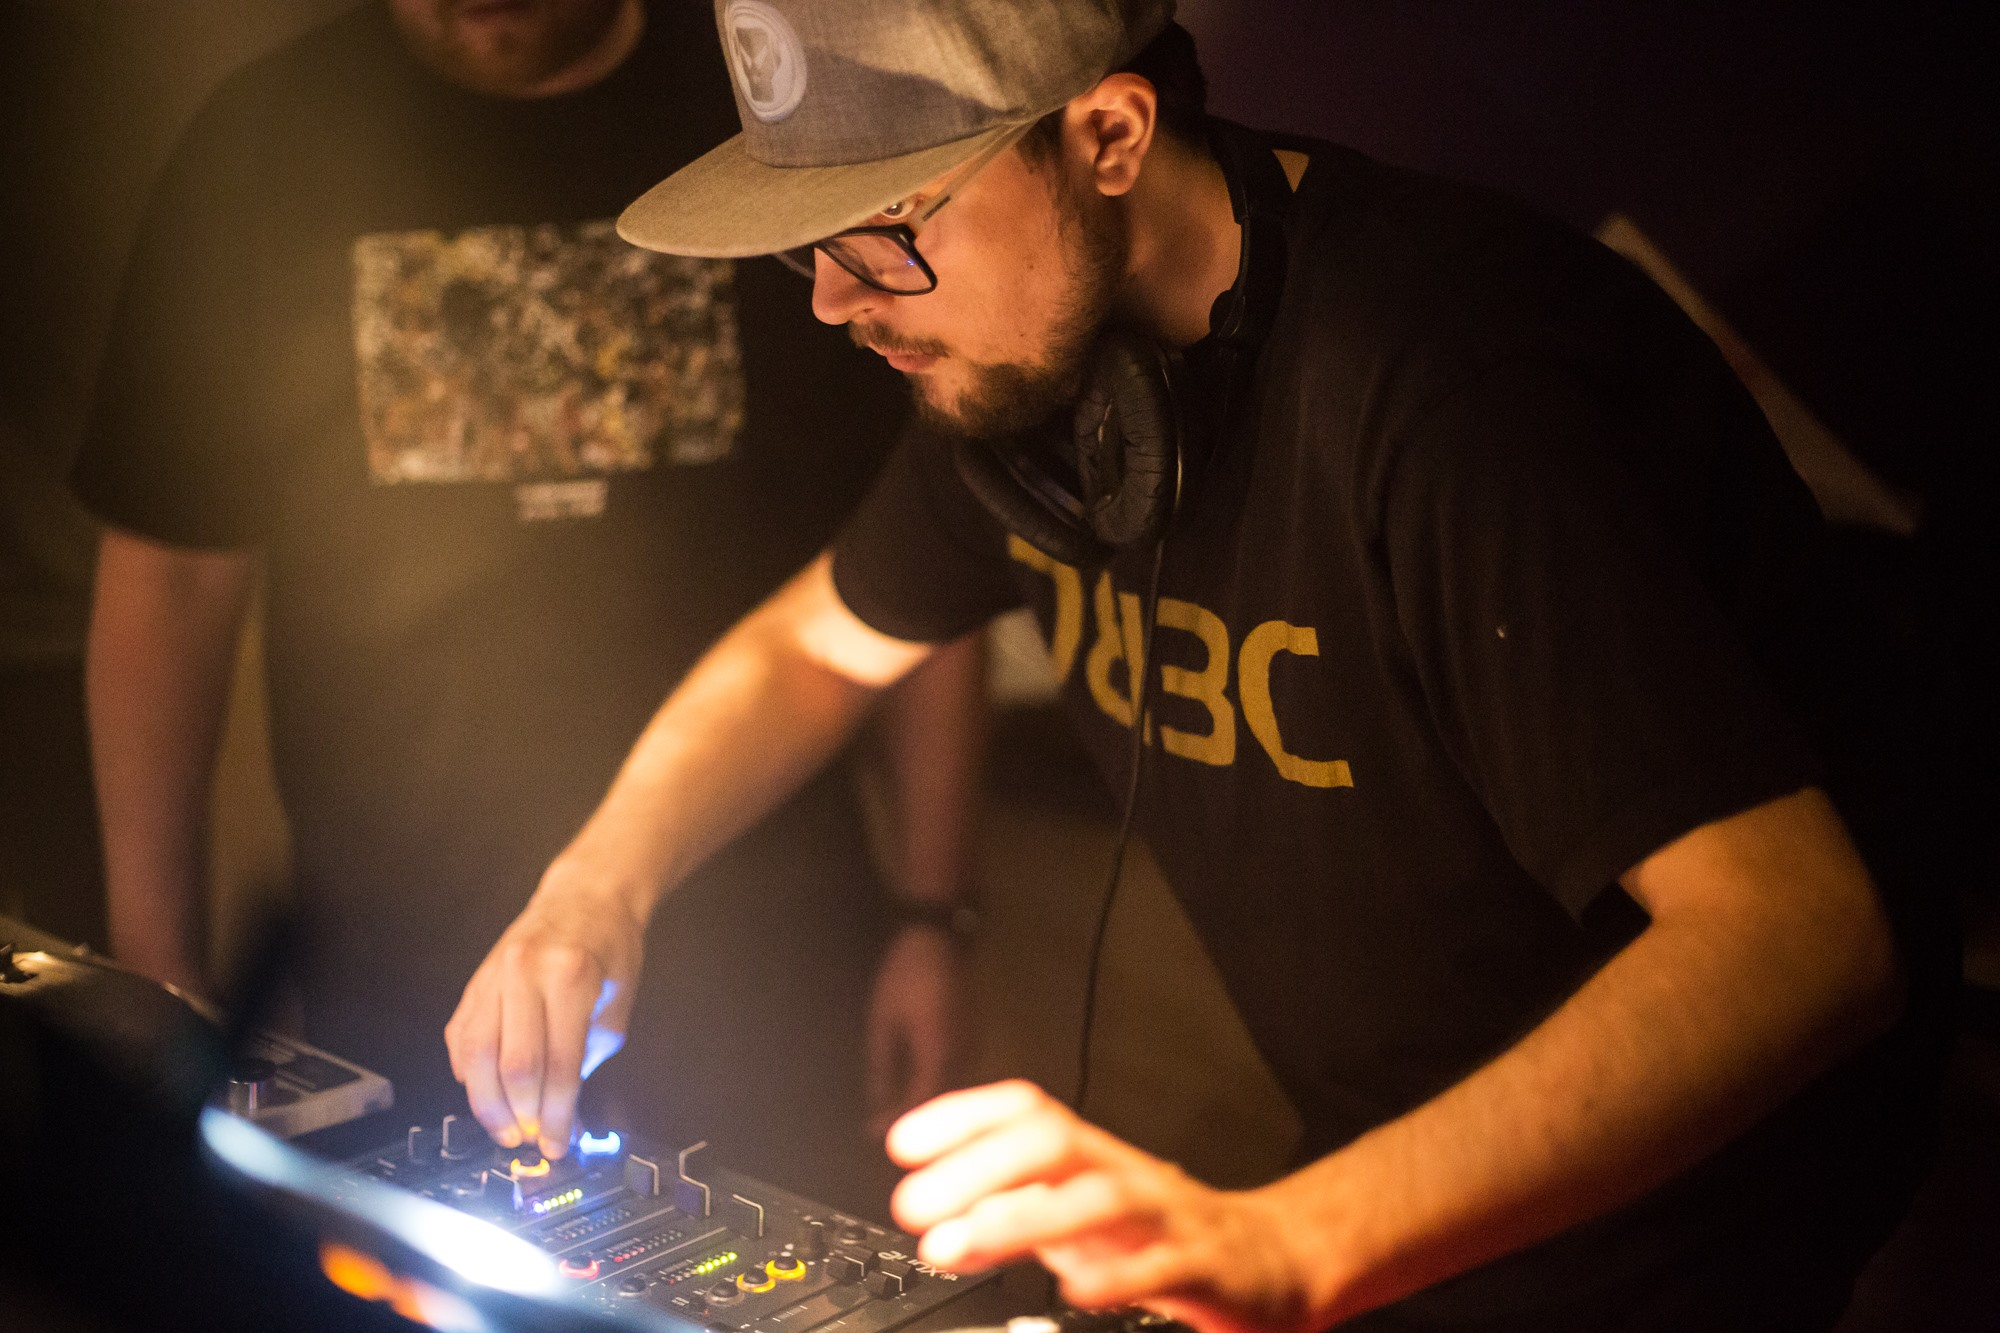 Jnb djing at a nightclub